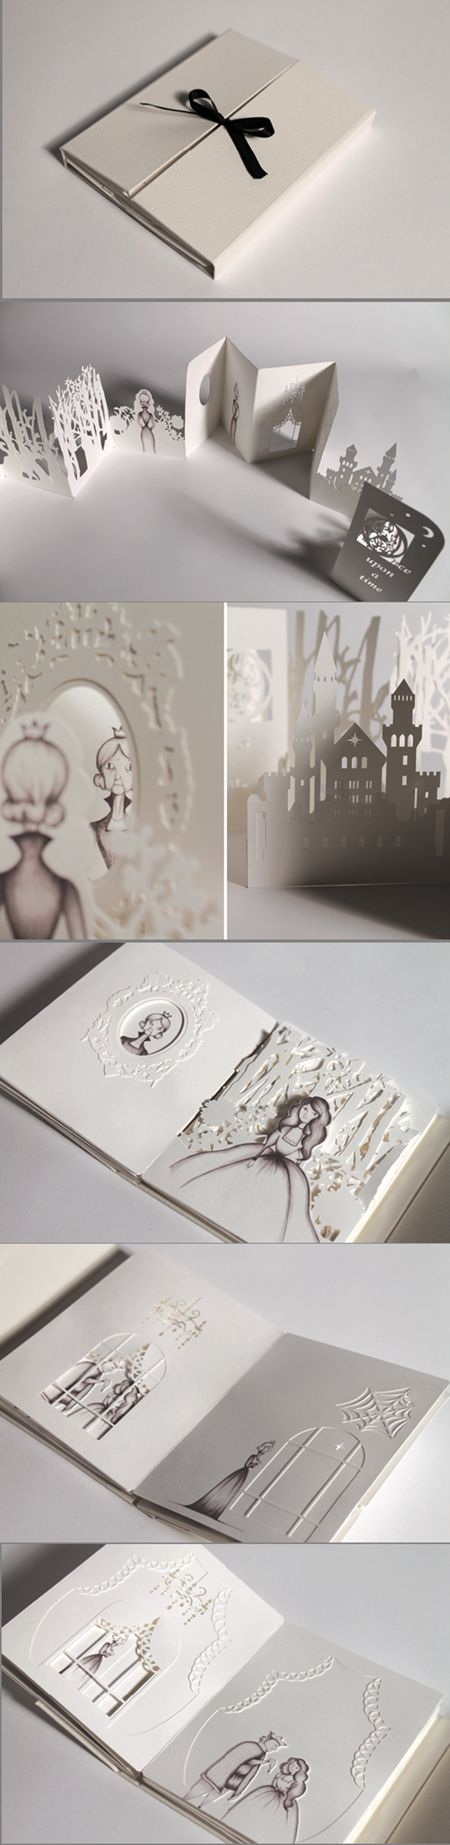 Hiroko Matshushita的剪纸书作品. Love the idea that you can tell a story through this laser cut open out illustration. Would make a great wedding invite. Should I ever get married.